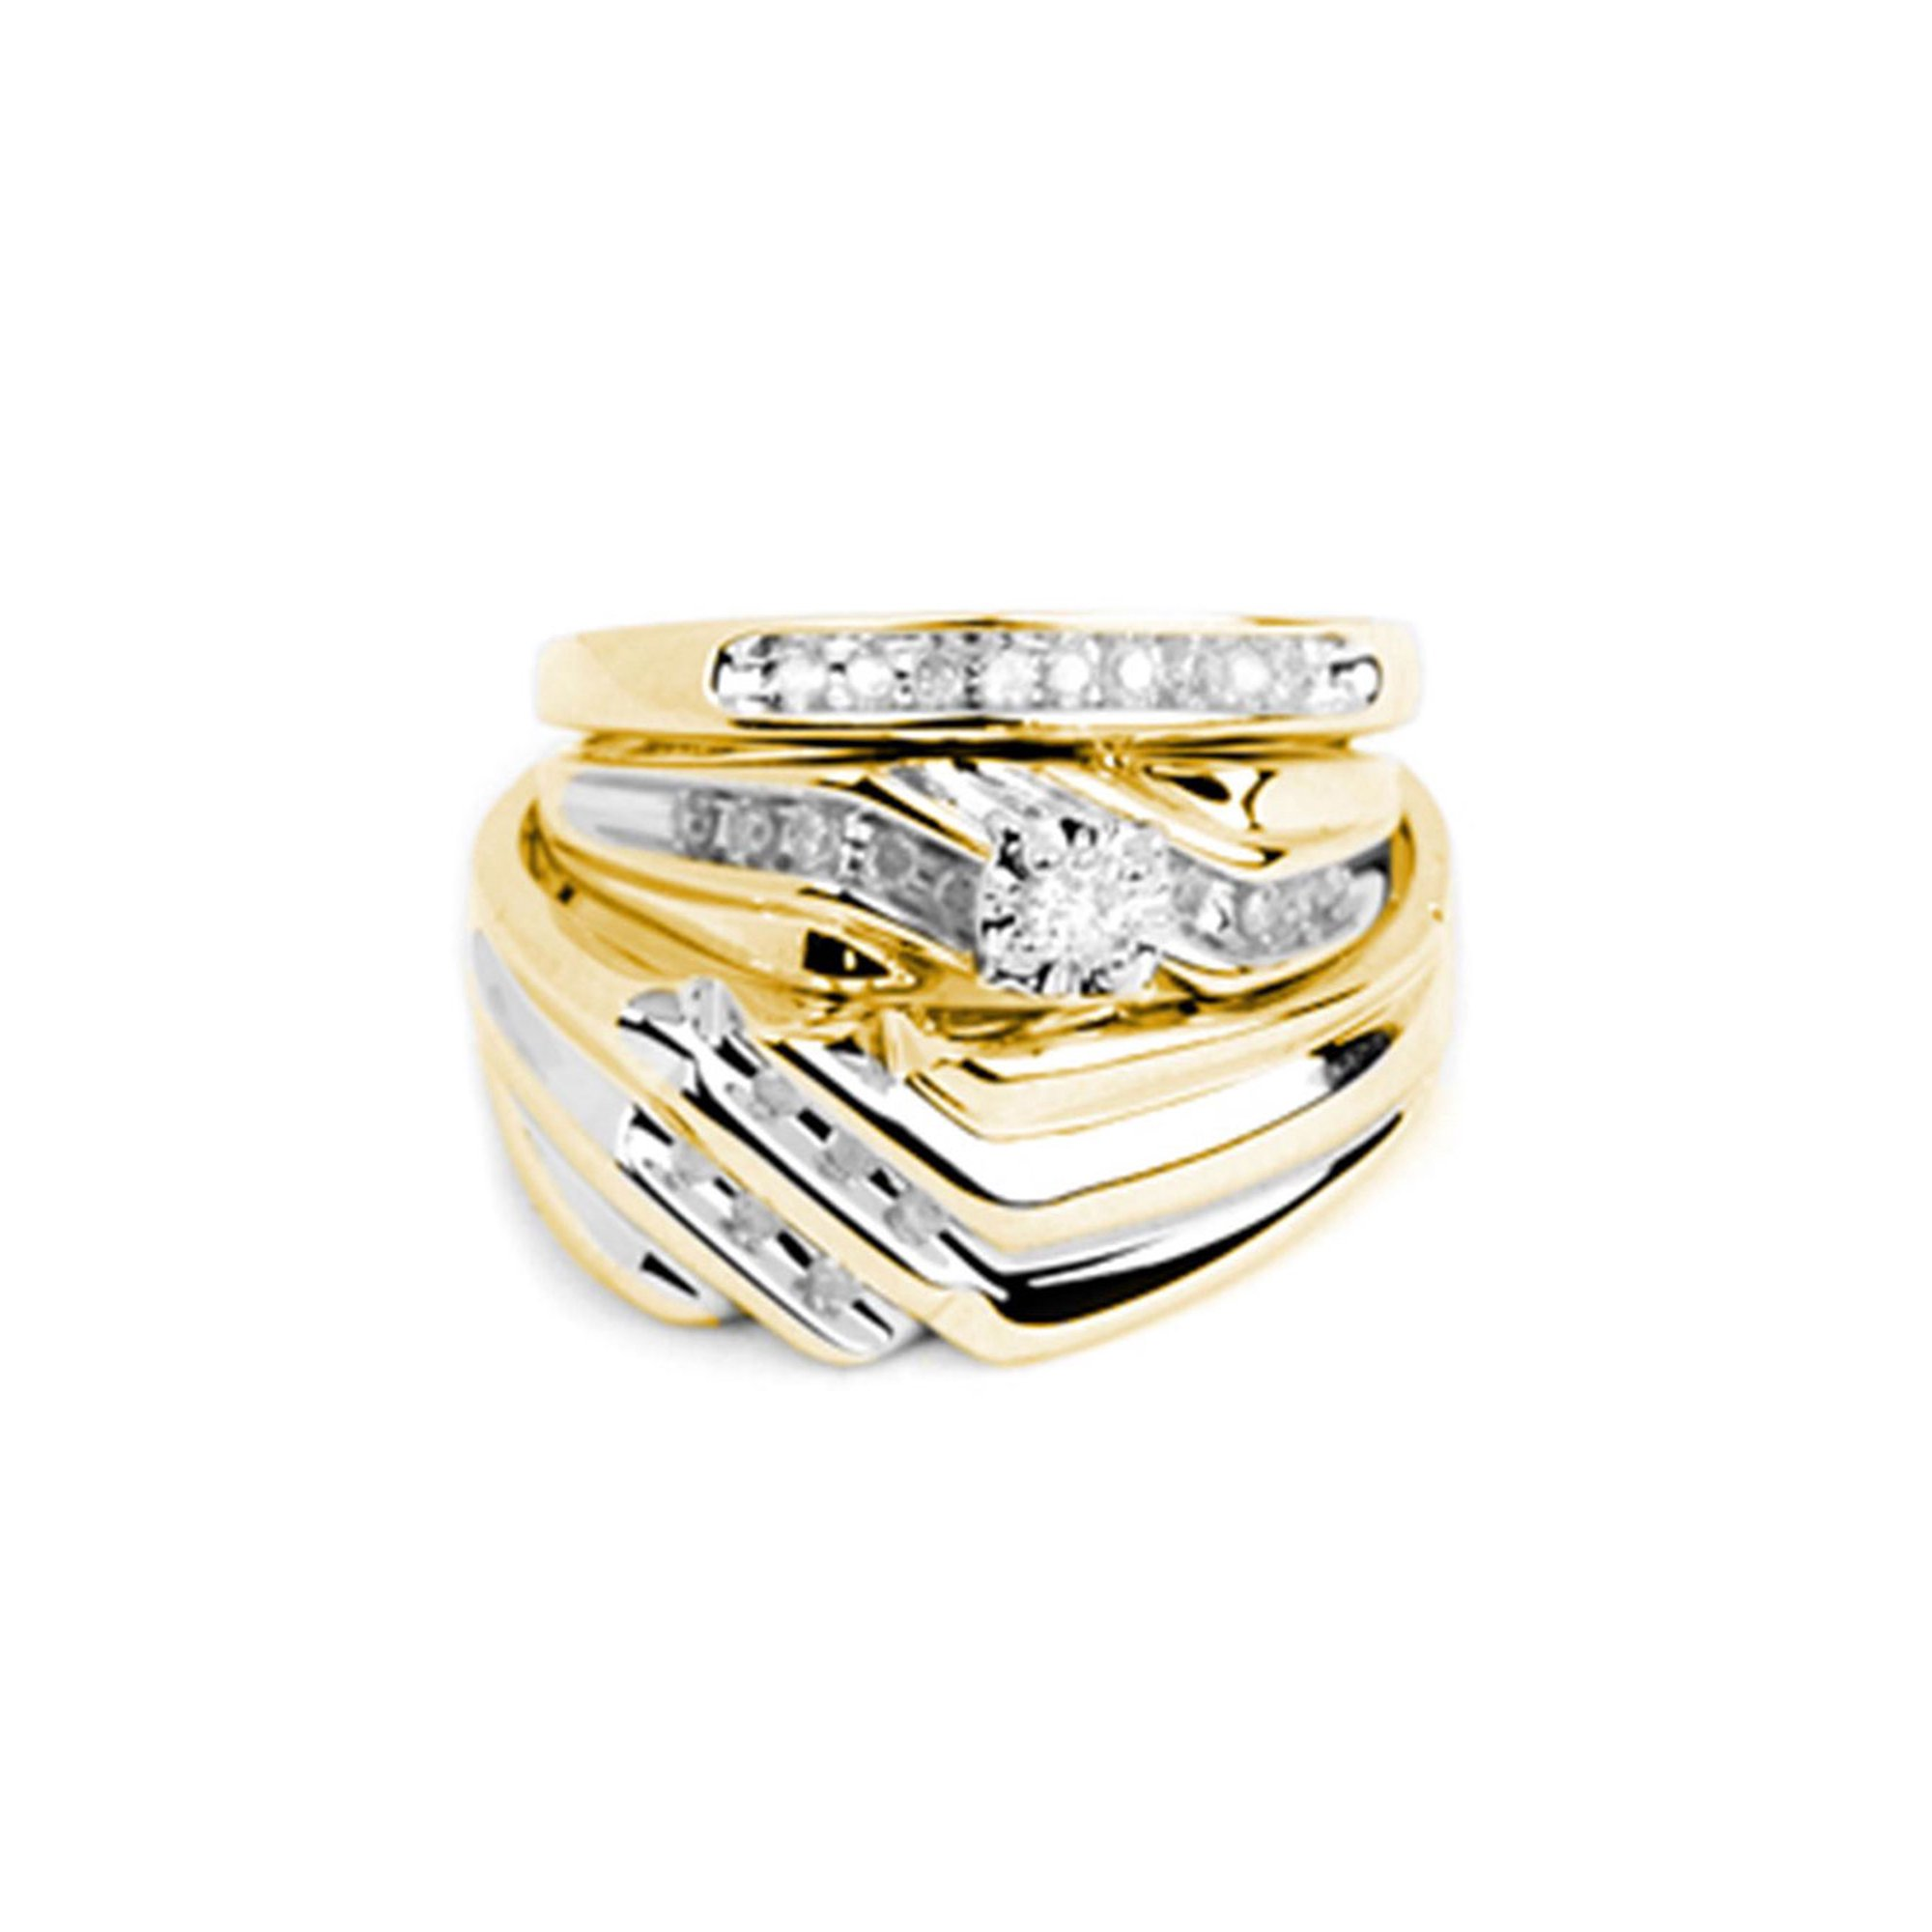 It is just a graphic of AA Jewels - Solid 48k Yellow Gold His and Hers Round Diamond Solitaire Matching Couple Three Rings Bridal Engagement Ring Wedding Bands Set 48/48 Ct. -